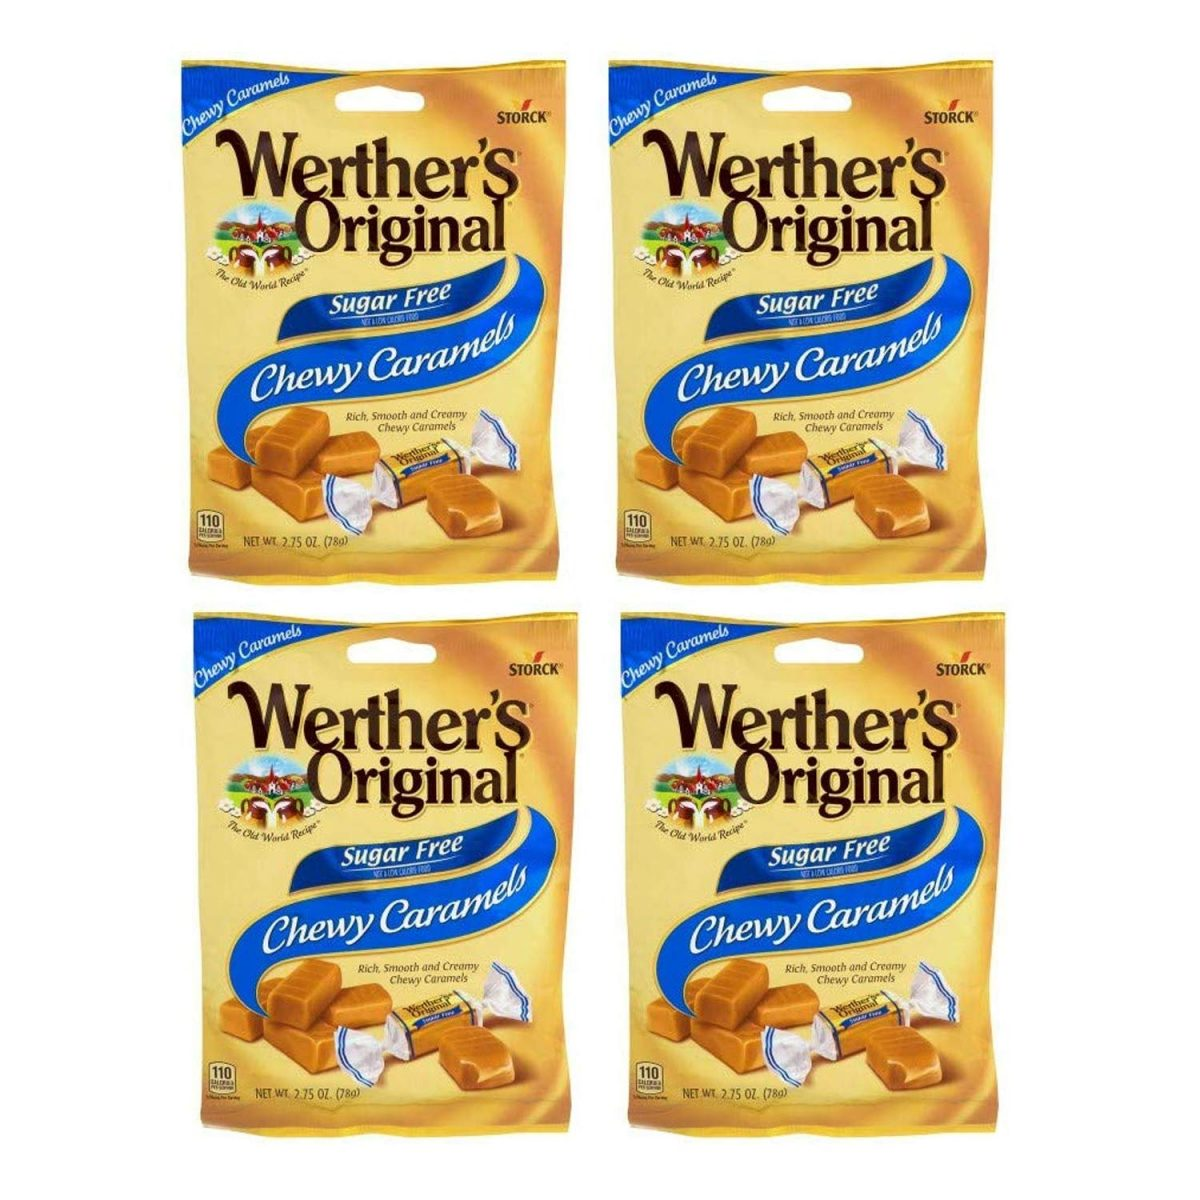 Werthers Sugar Free Chewy Caramels